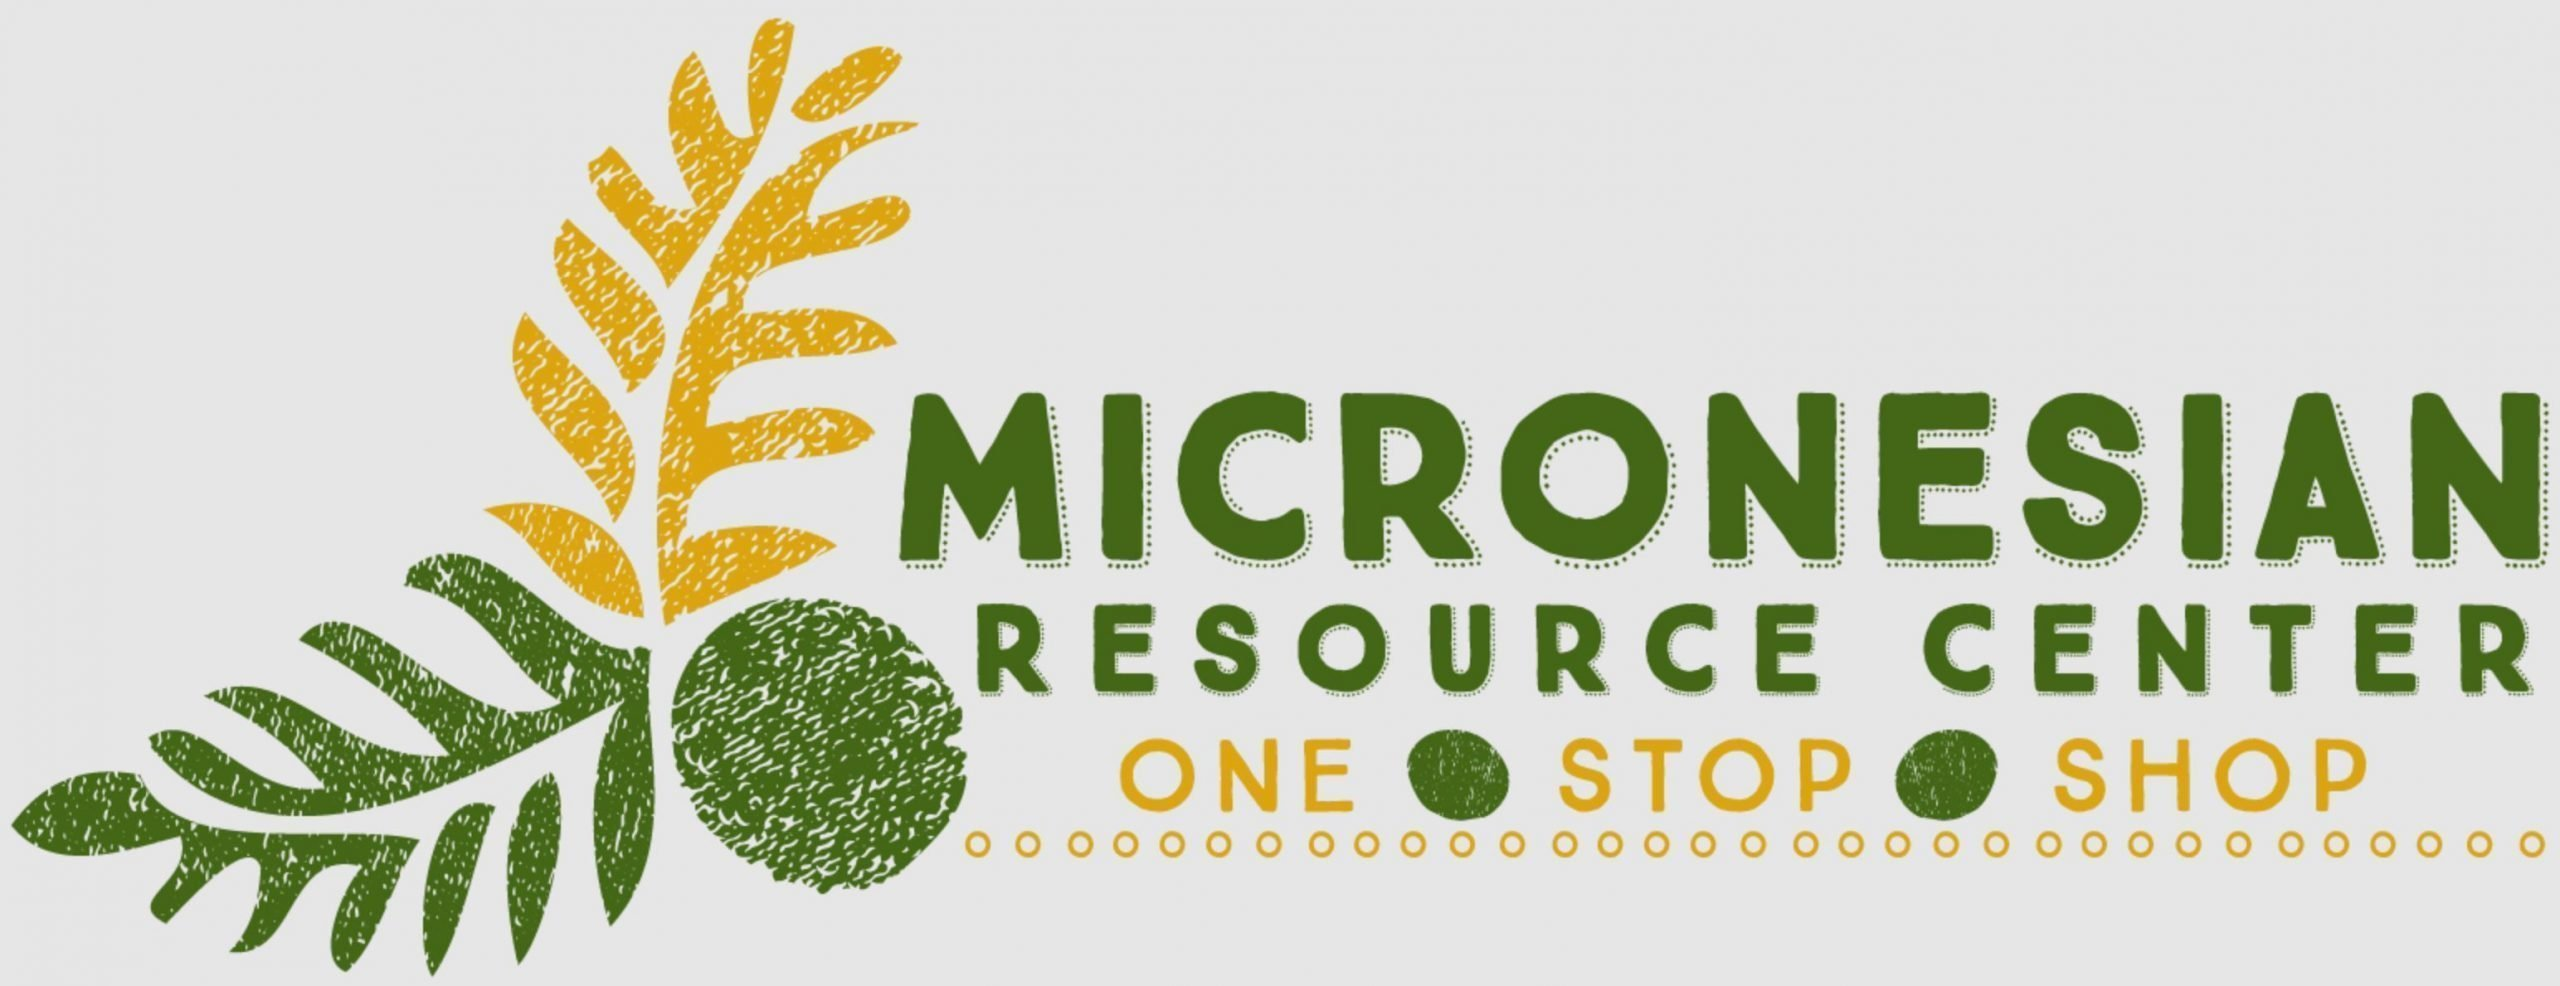 Micronesian Resource Center One-Stop Shop is a special project of Mañe'lu. We provide free informational and educational services to families from the neighboring islands of the Freely Associated States (FAS): Chuuk, Pohnpei, Kosrae, Yap, Palau, & the Marshall Islands.